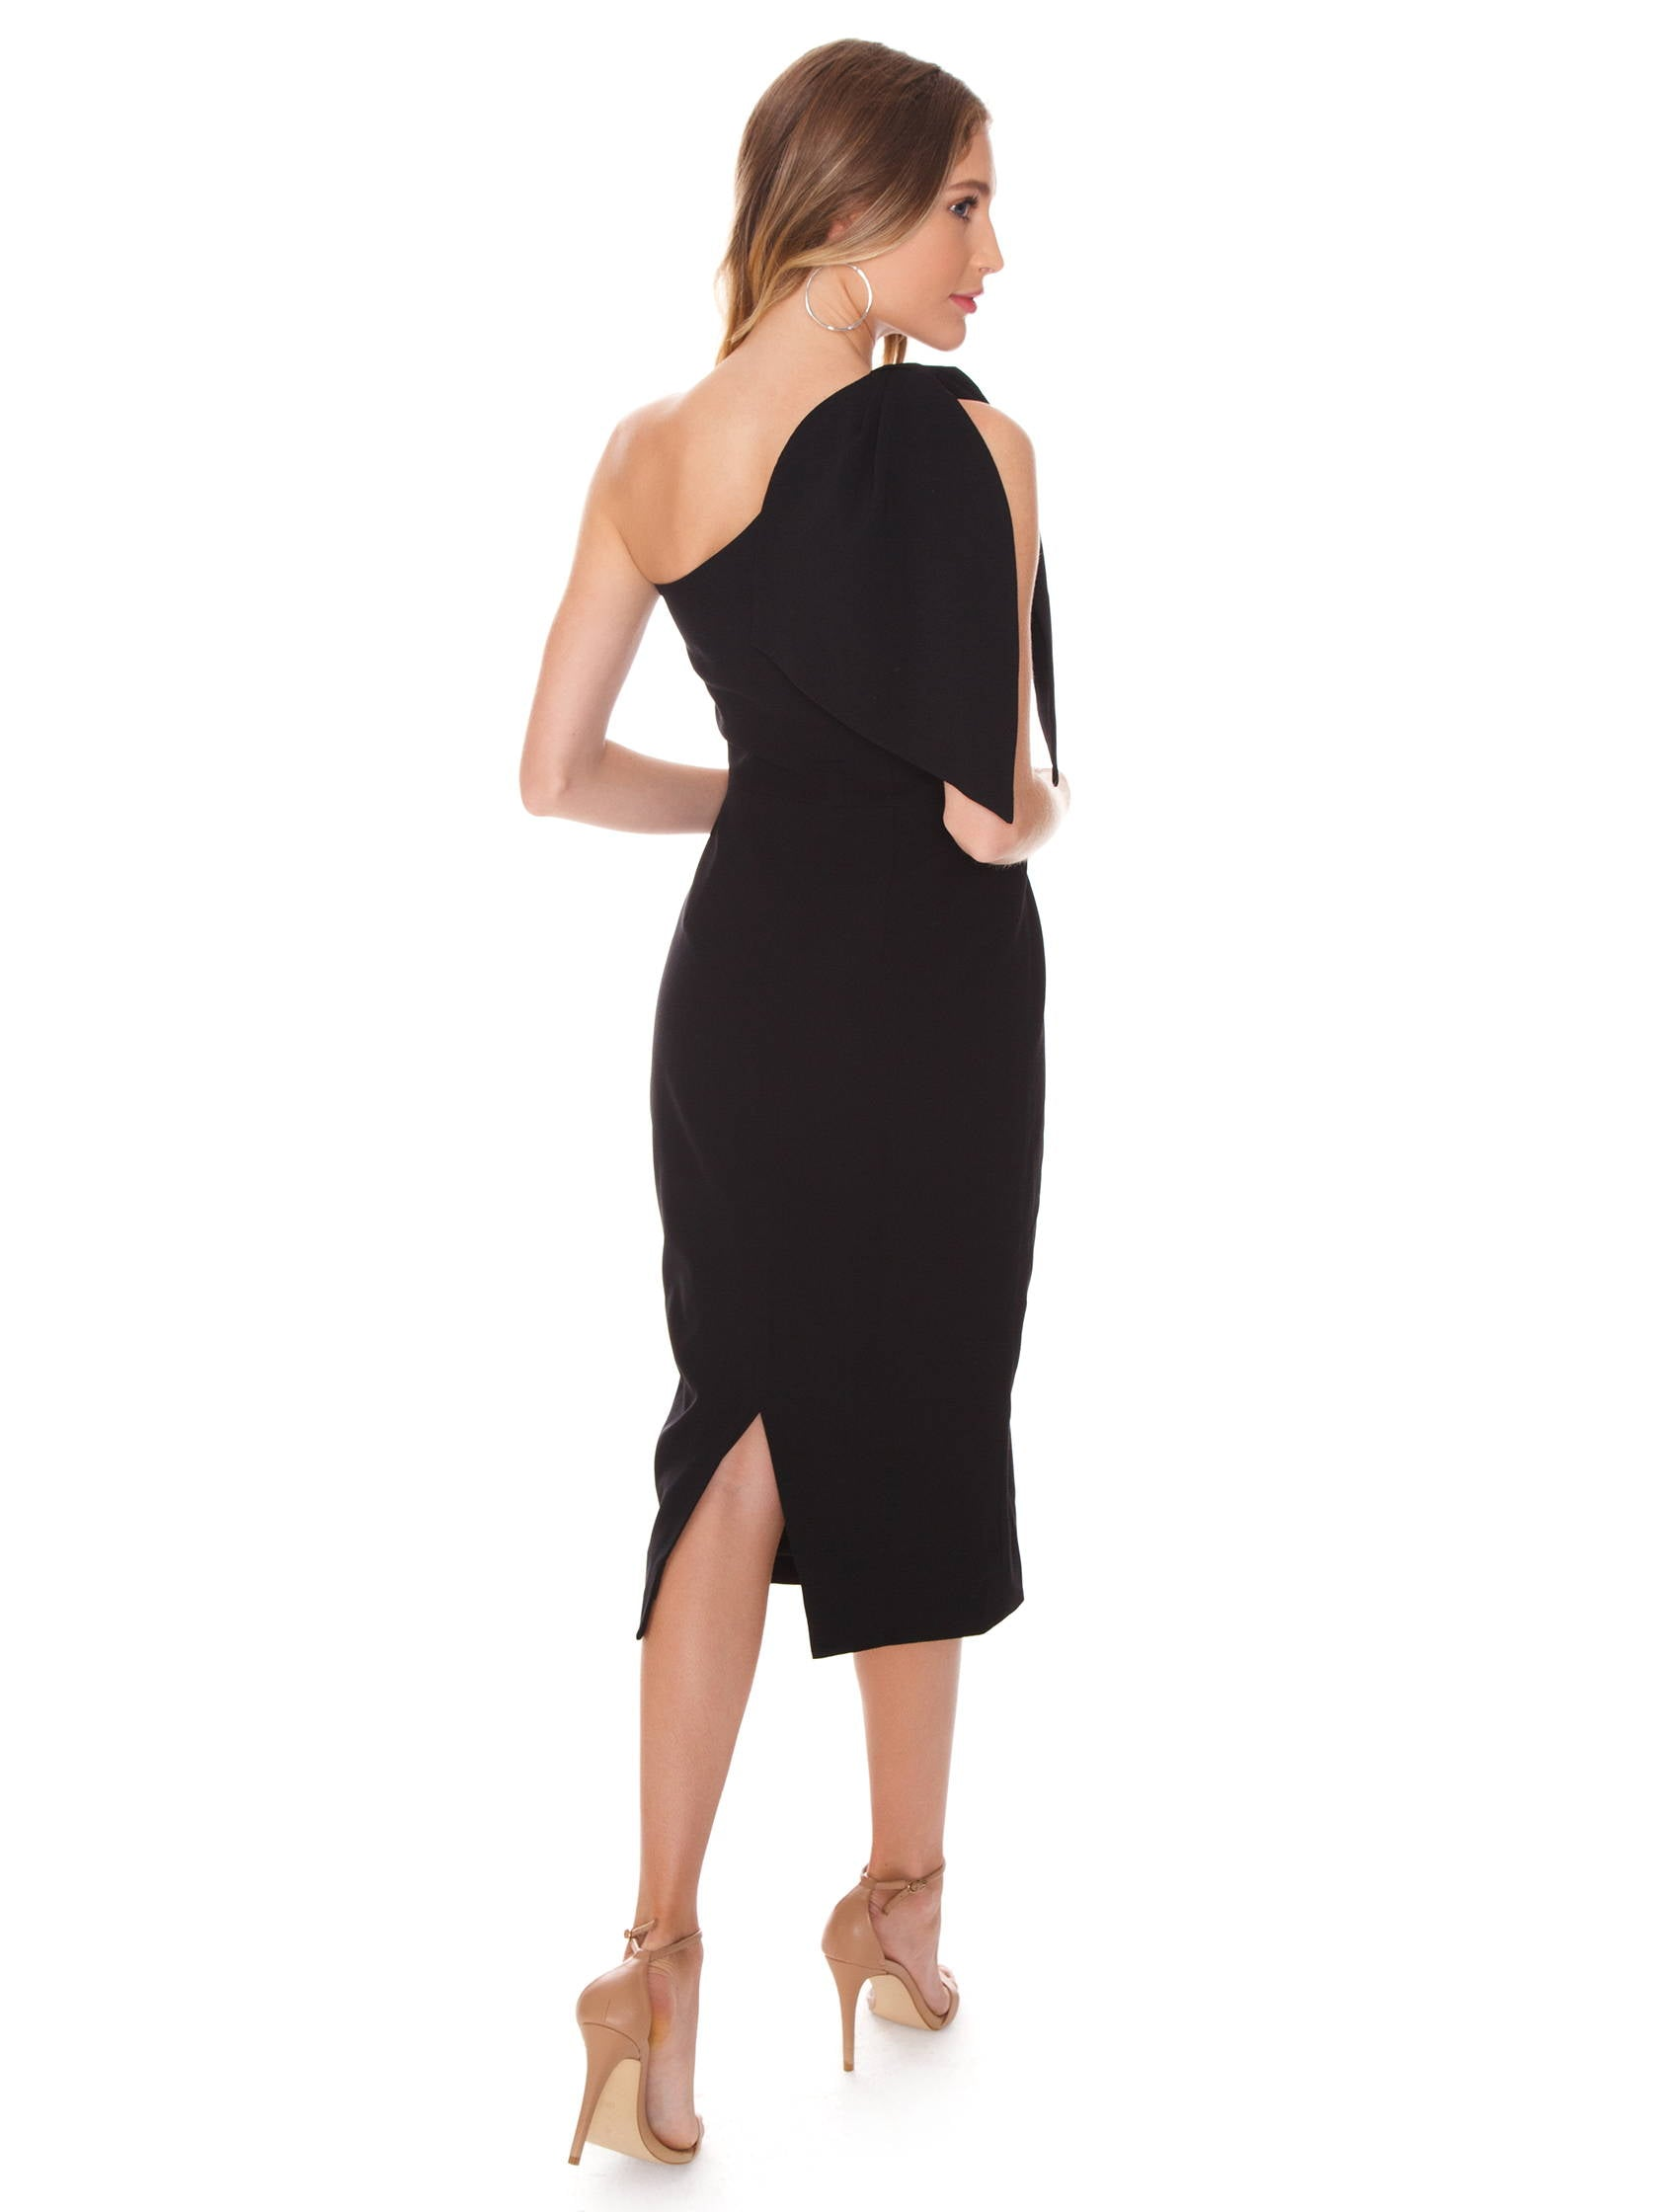 Women wearing a dress rental from Dress the Population called Tiffany One-shoulder Midi Dress